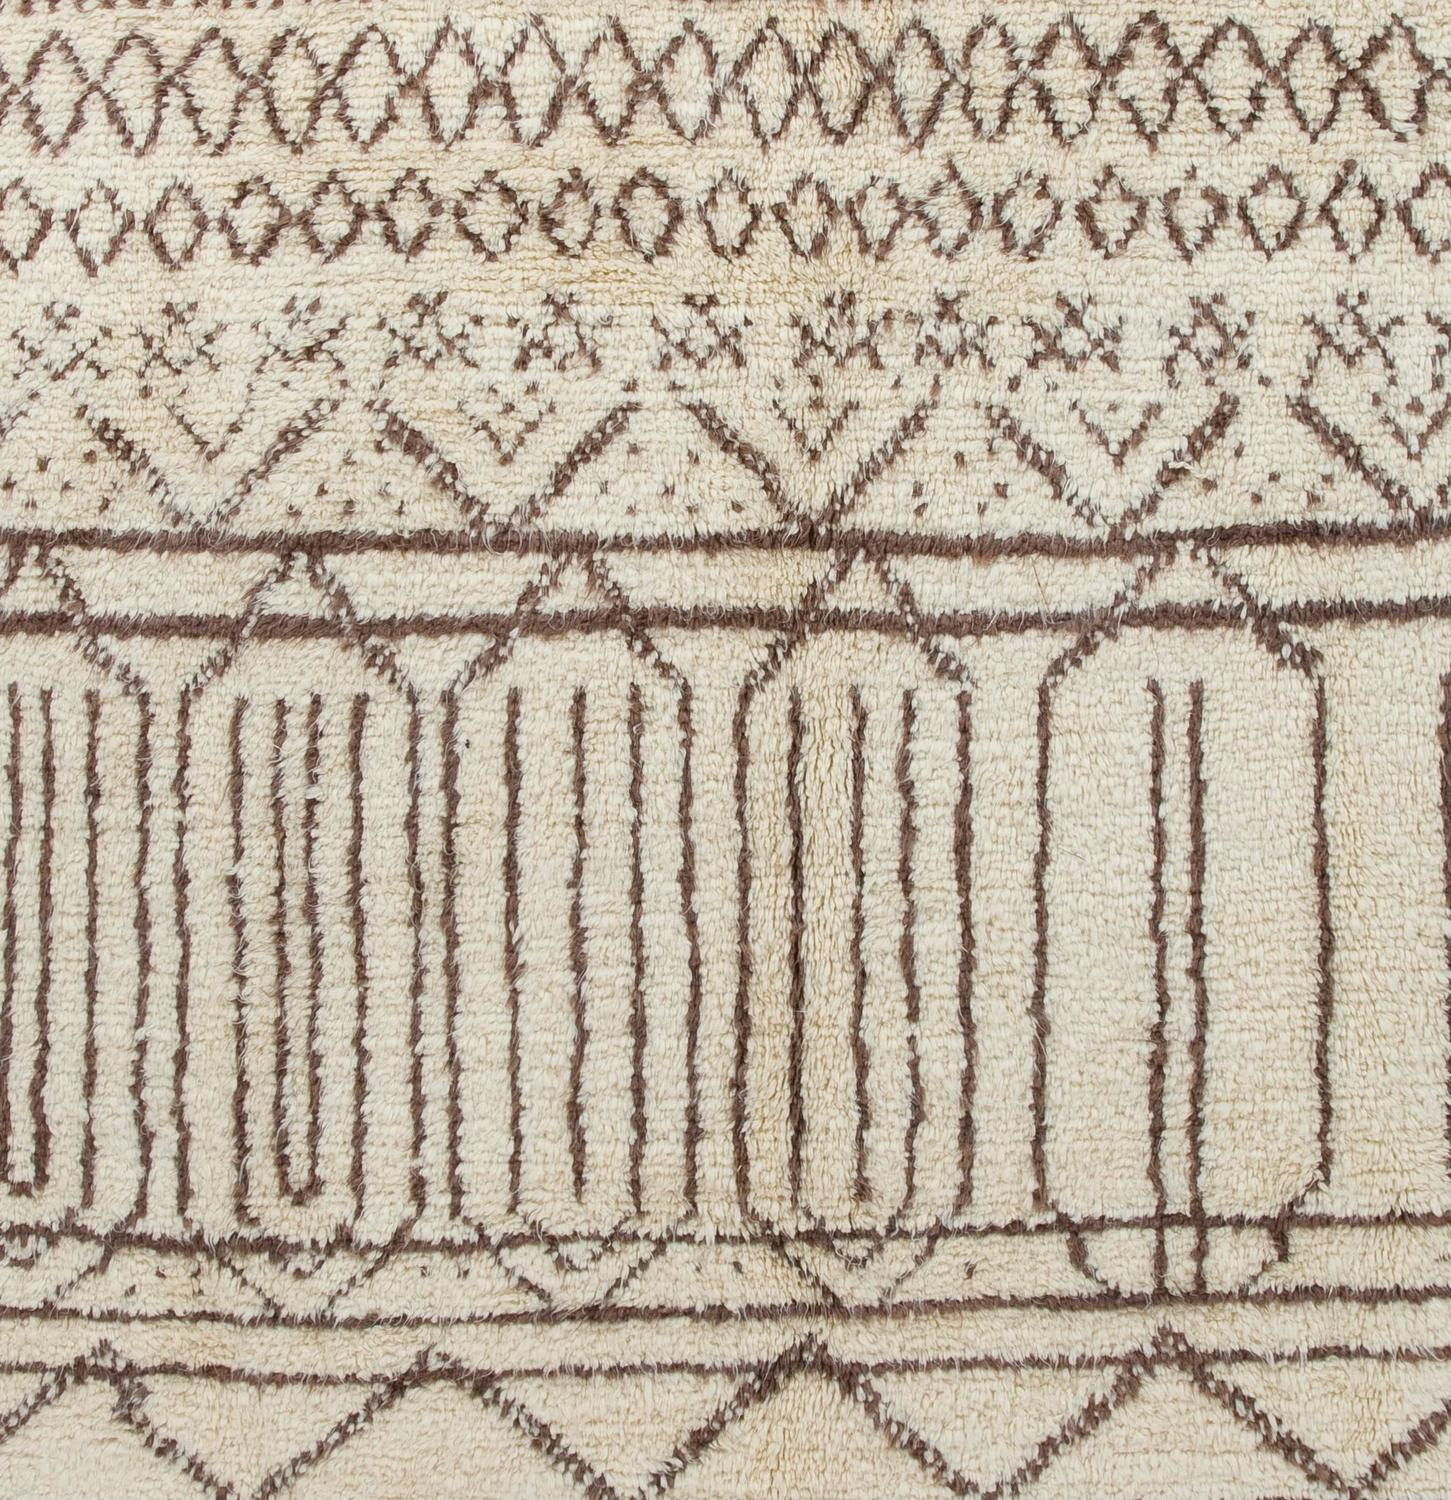 Moroccan Rug Made Of Natural Undyed Wool For Sale At 1stdibs